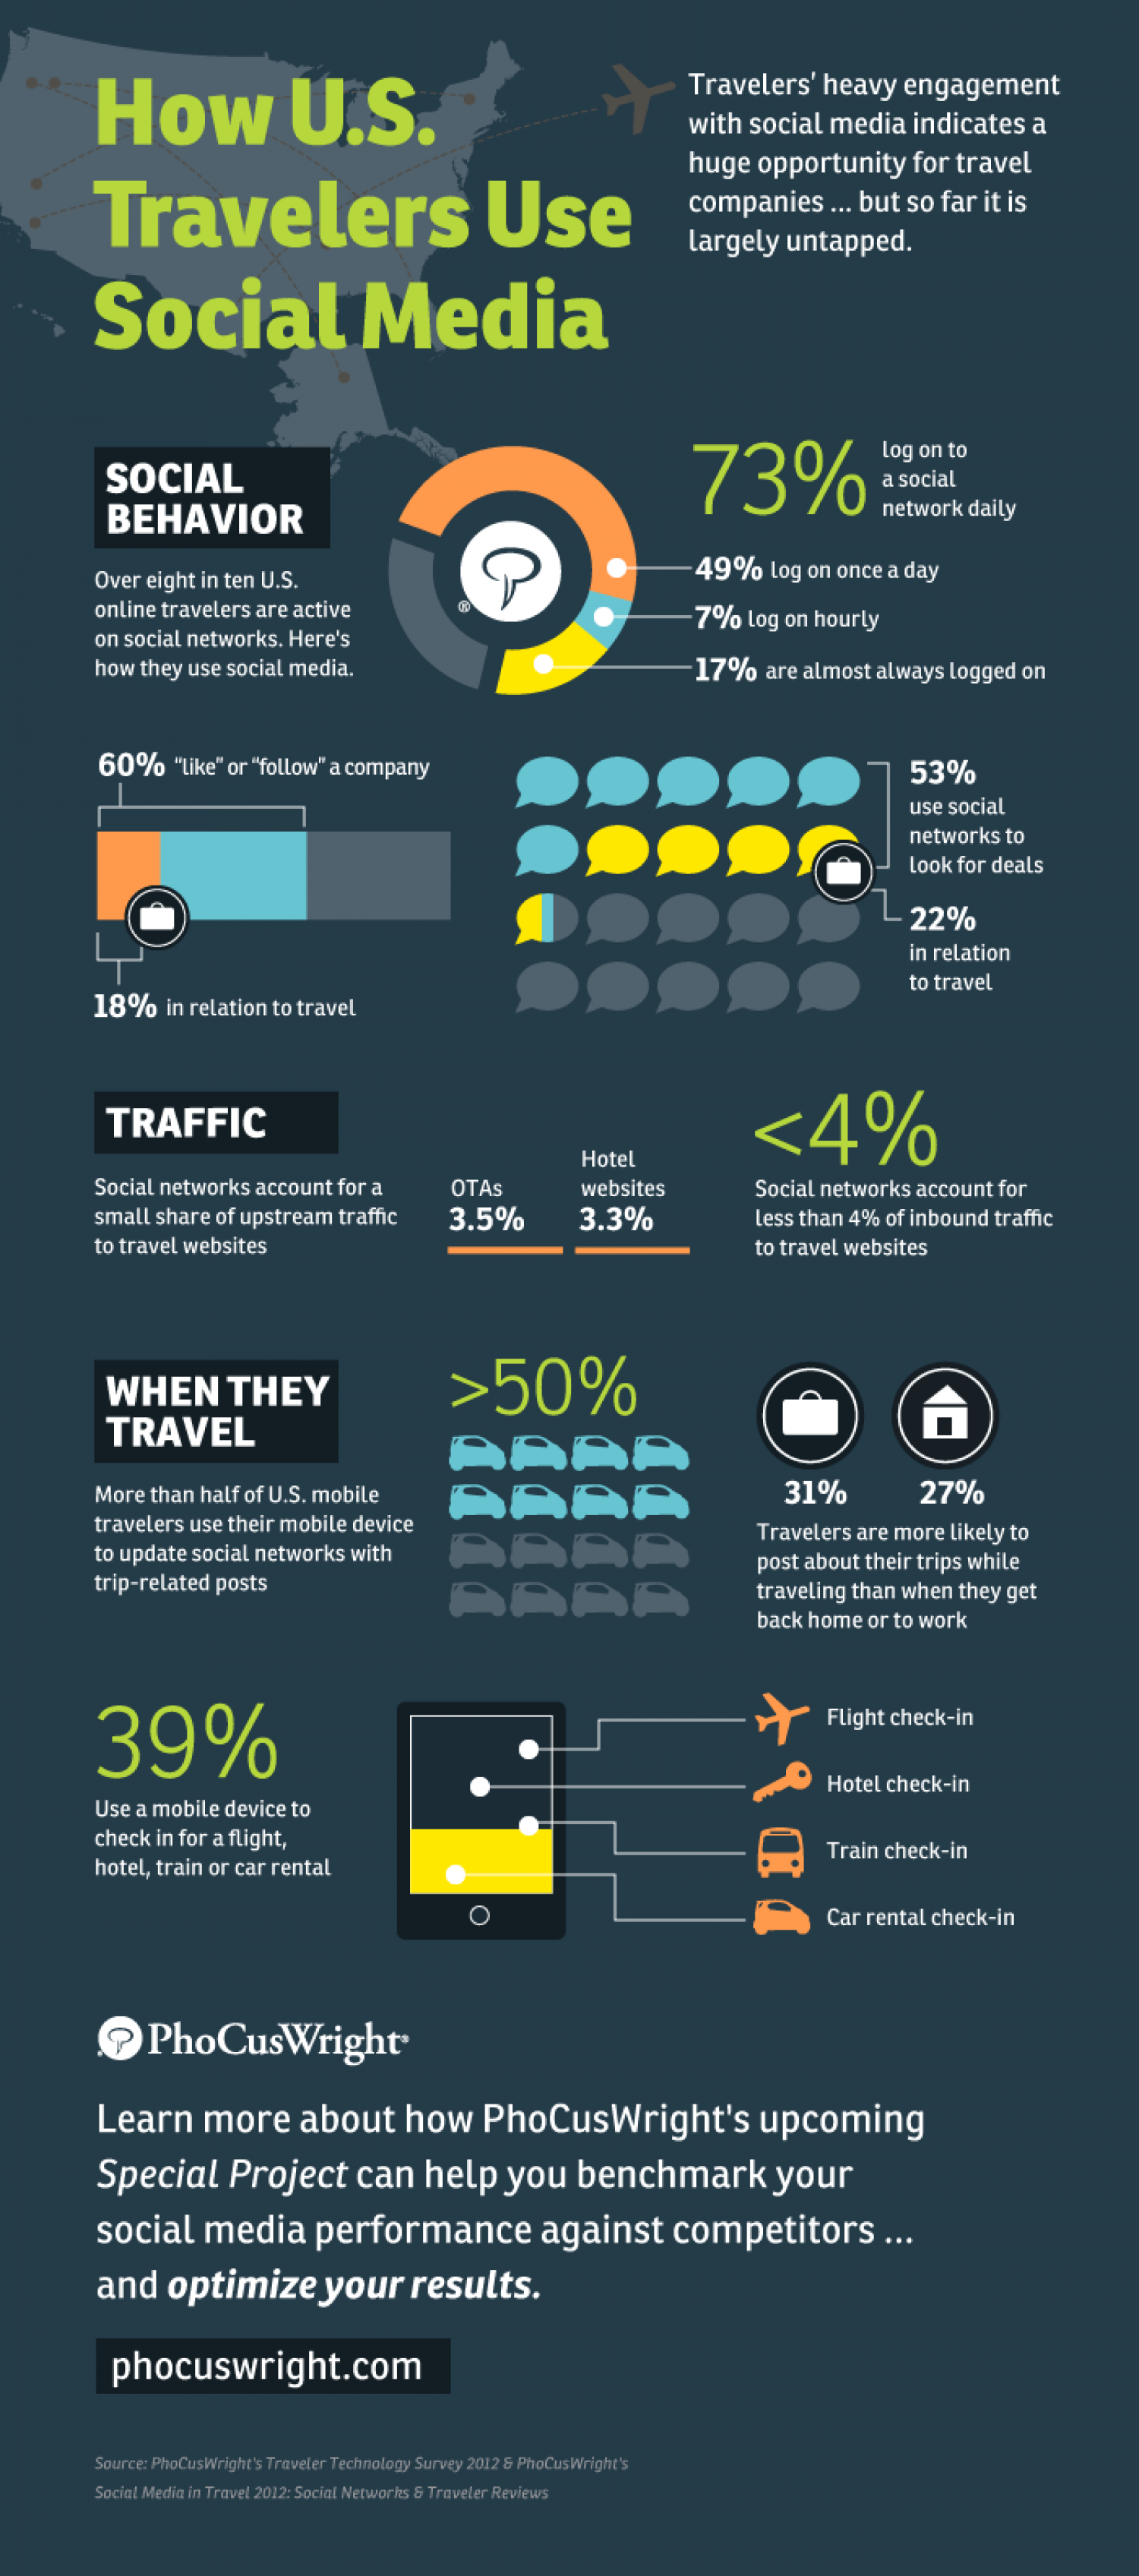 How U.S. Travelers Use Social Media Infographic